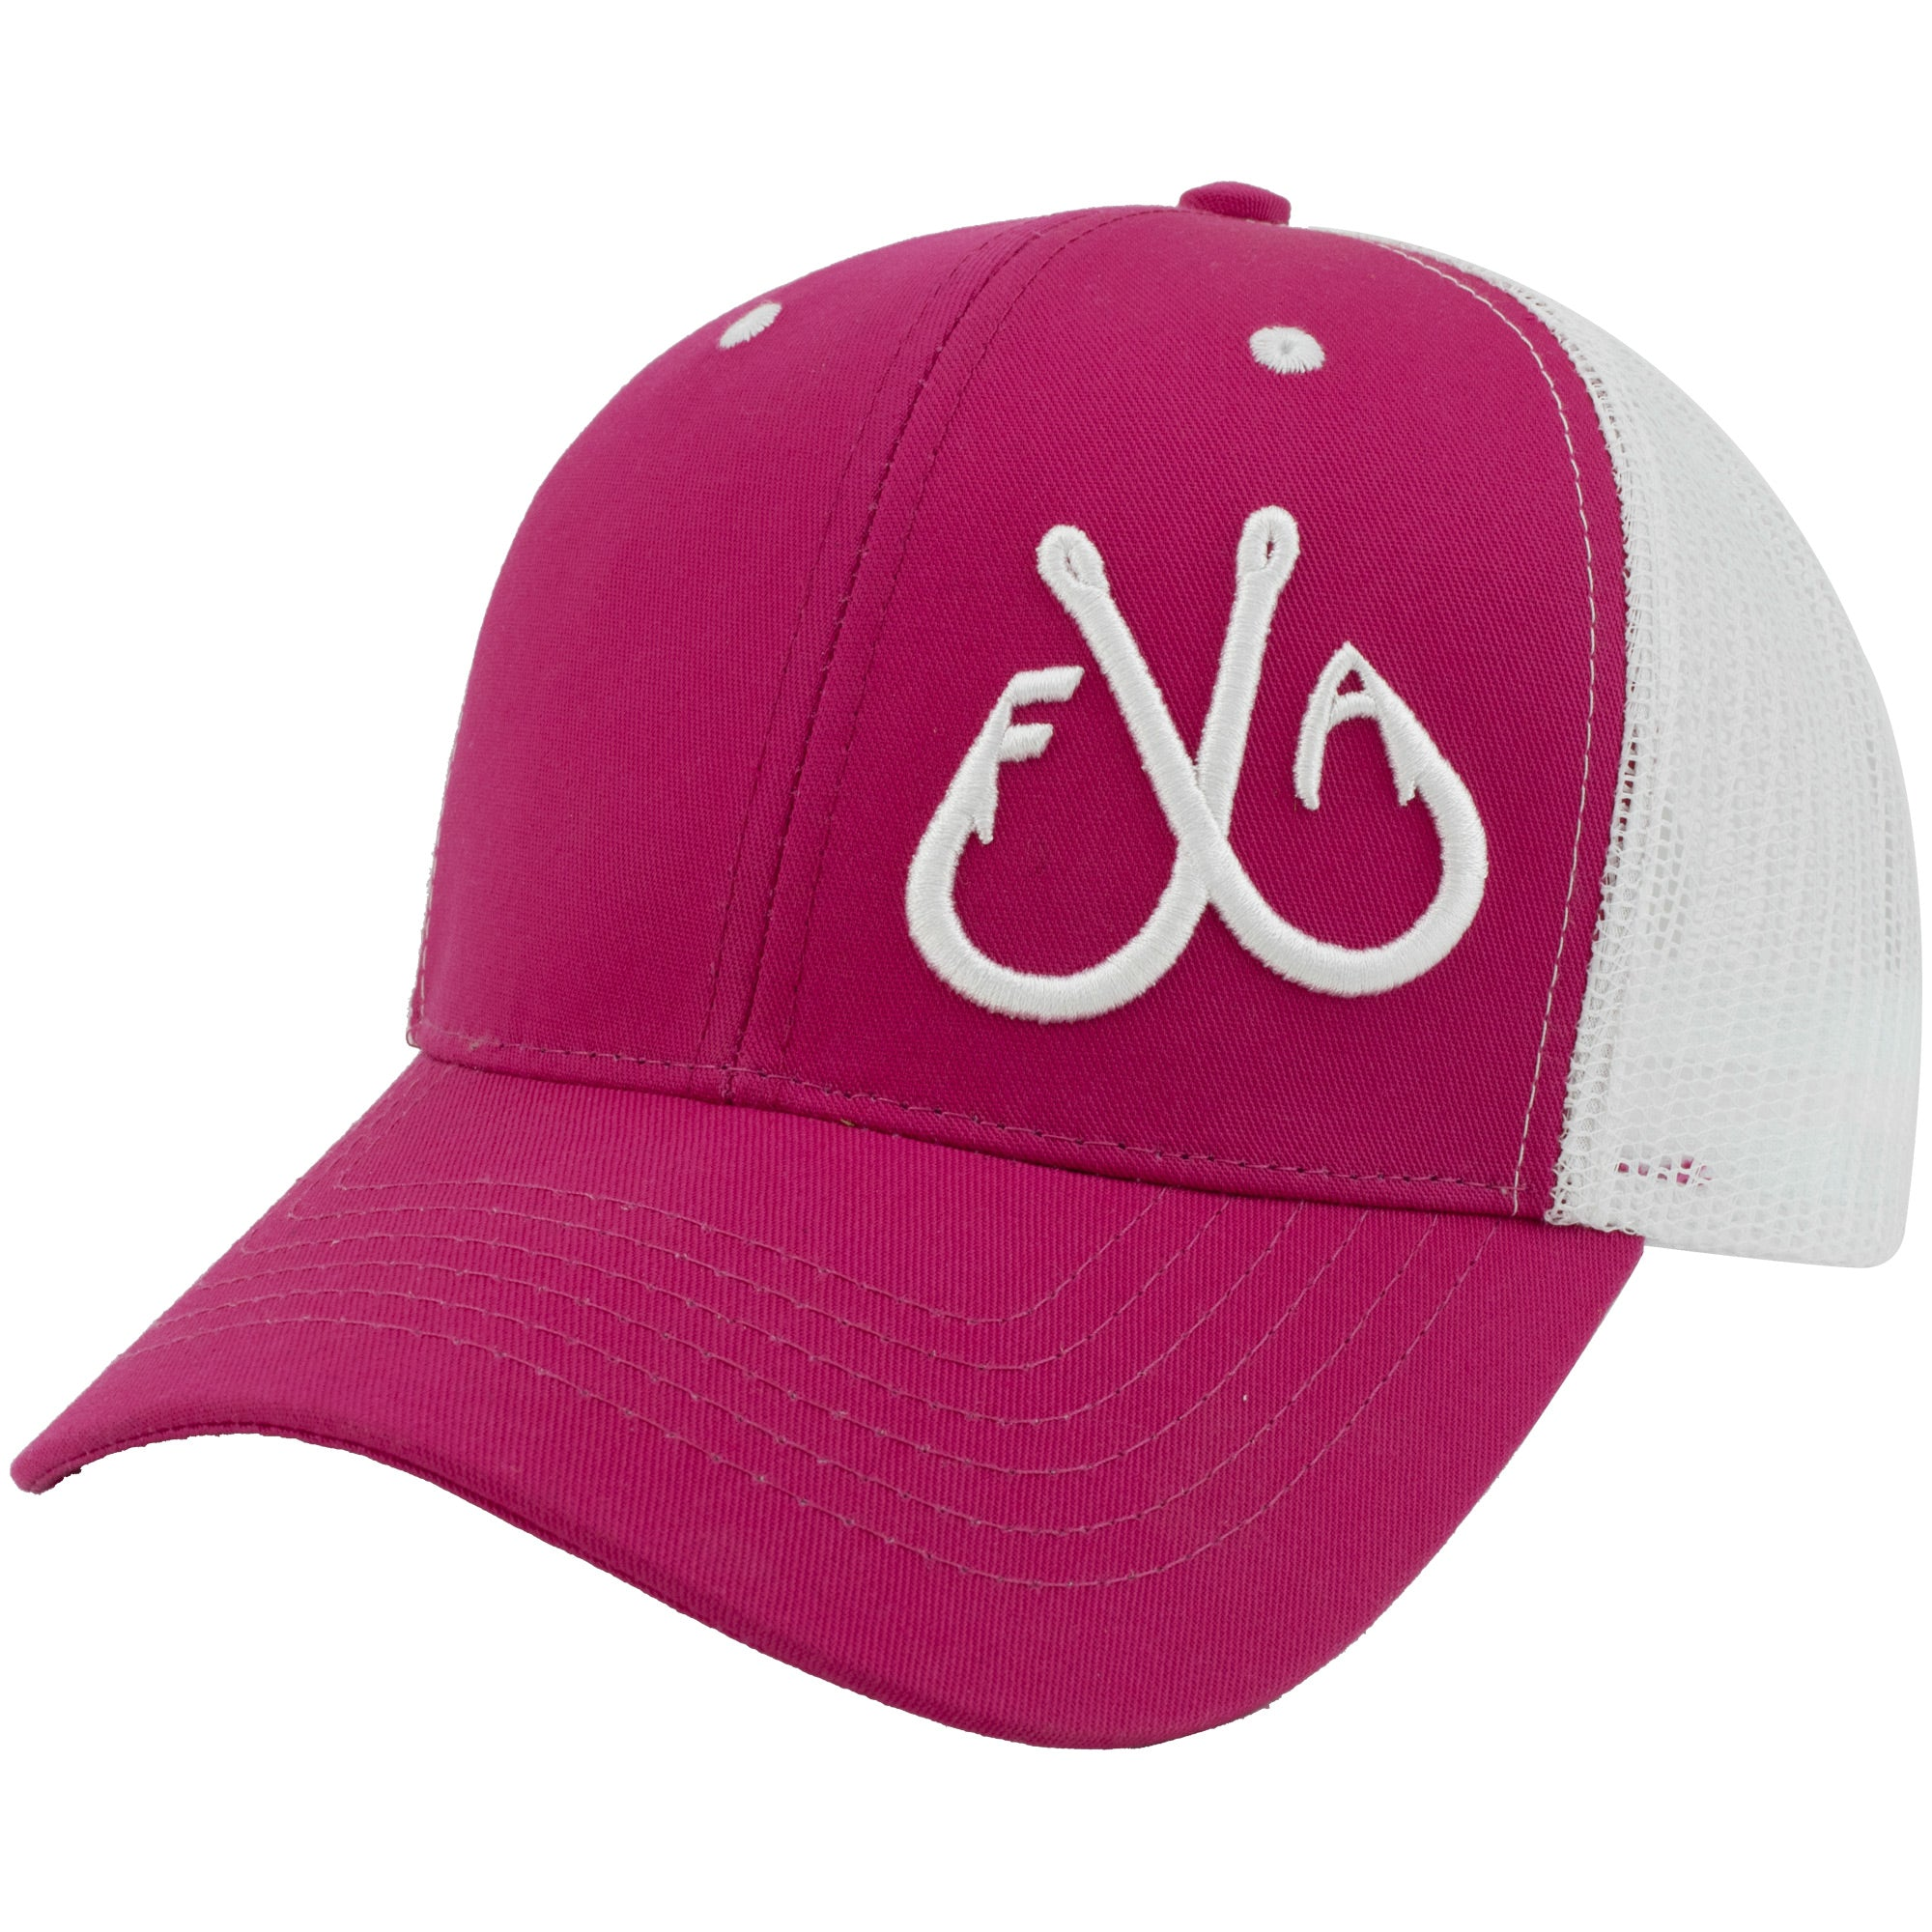 a91e83a37e36a 3D Hooks Trucker Hat, Pink & White - Filthy Anglers